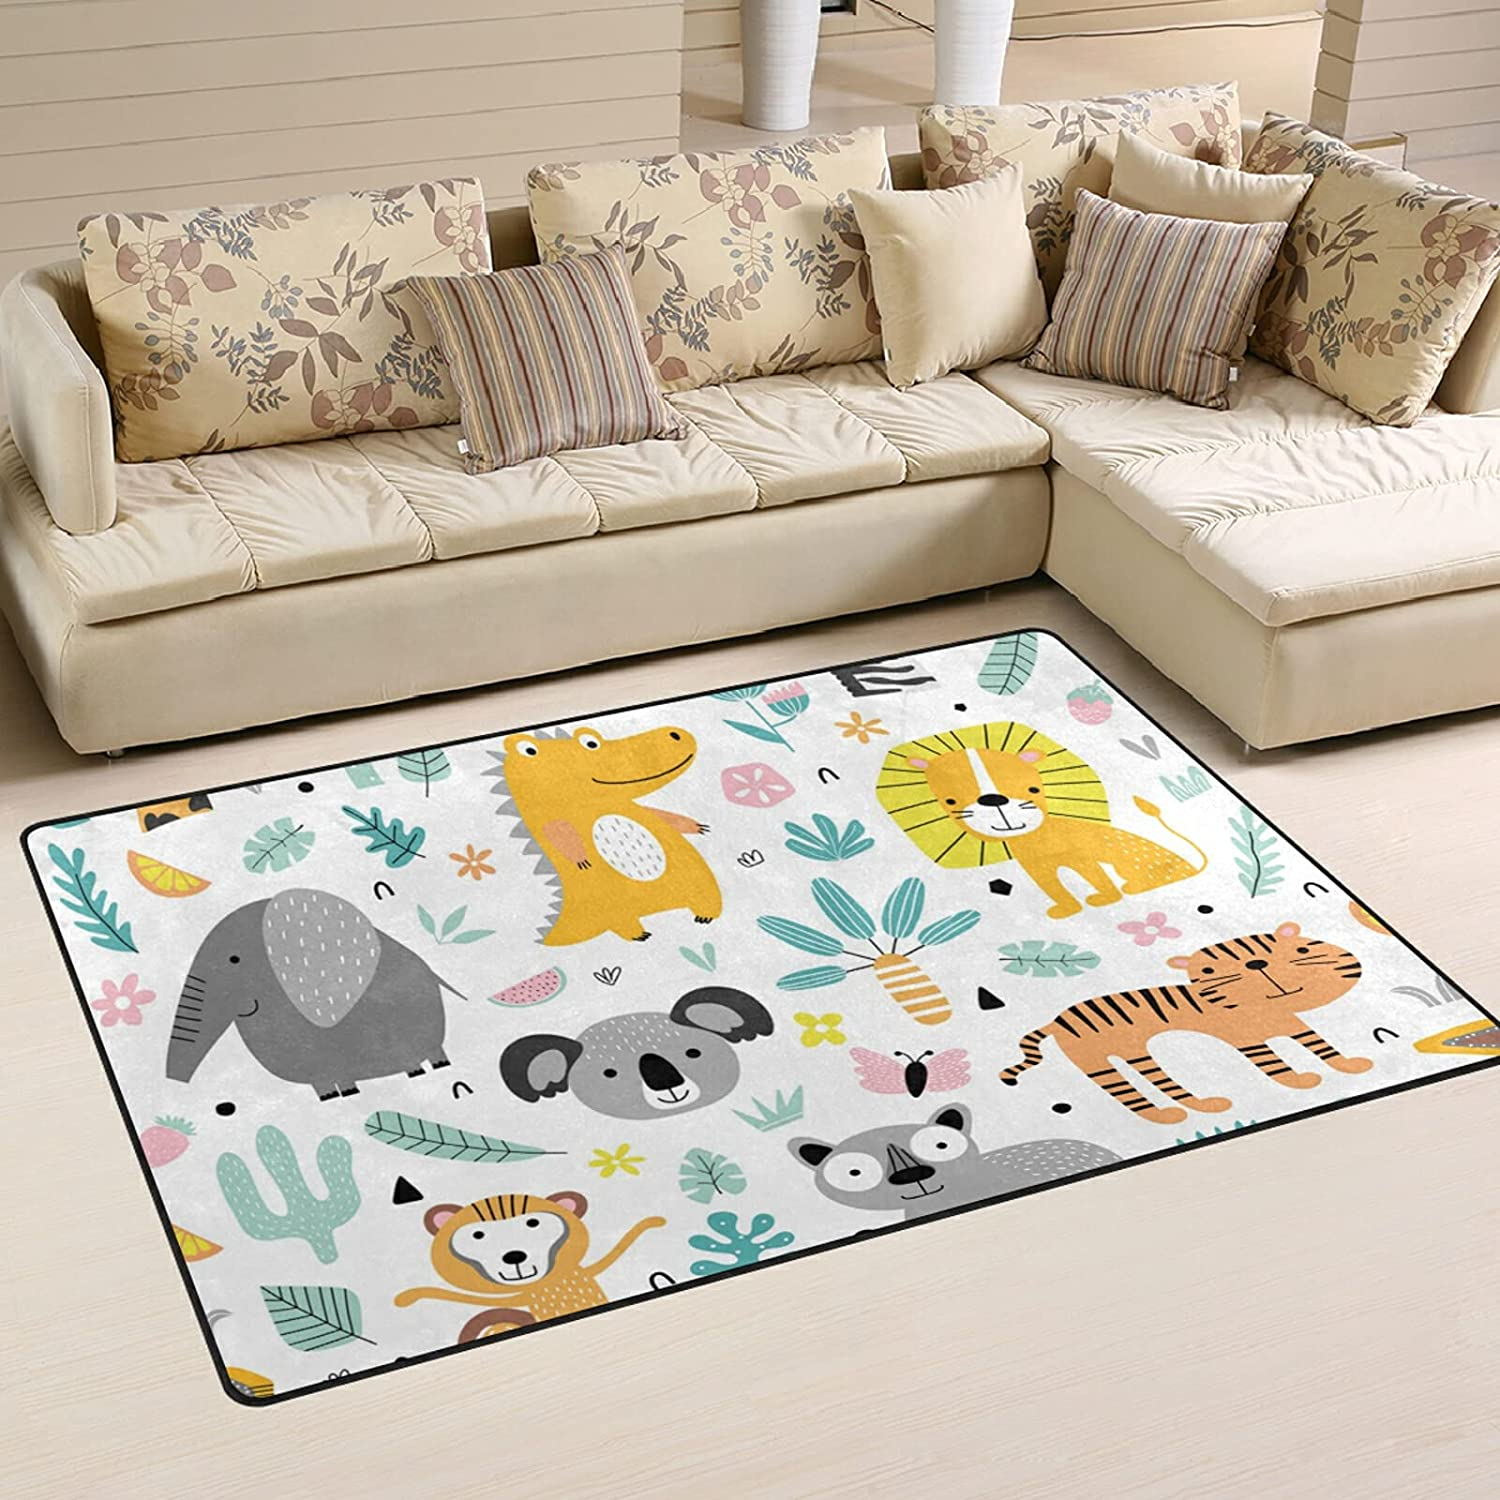 Jungle Animals Plants Large Soft Area Many Price reduction popular brands Rugs M Playmat Nursery Rug